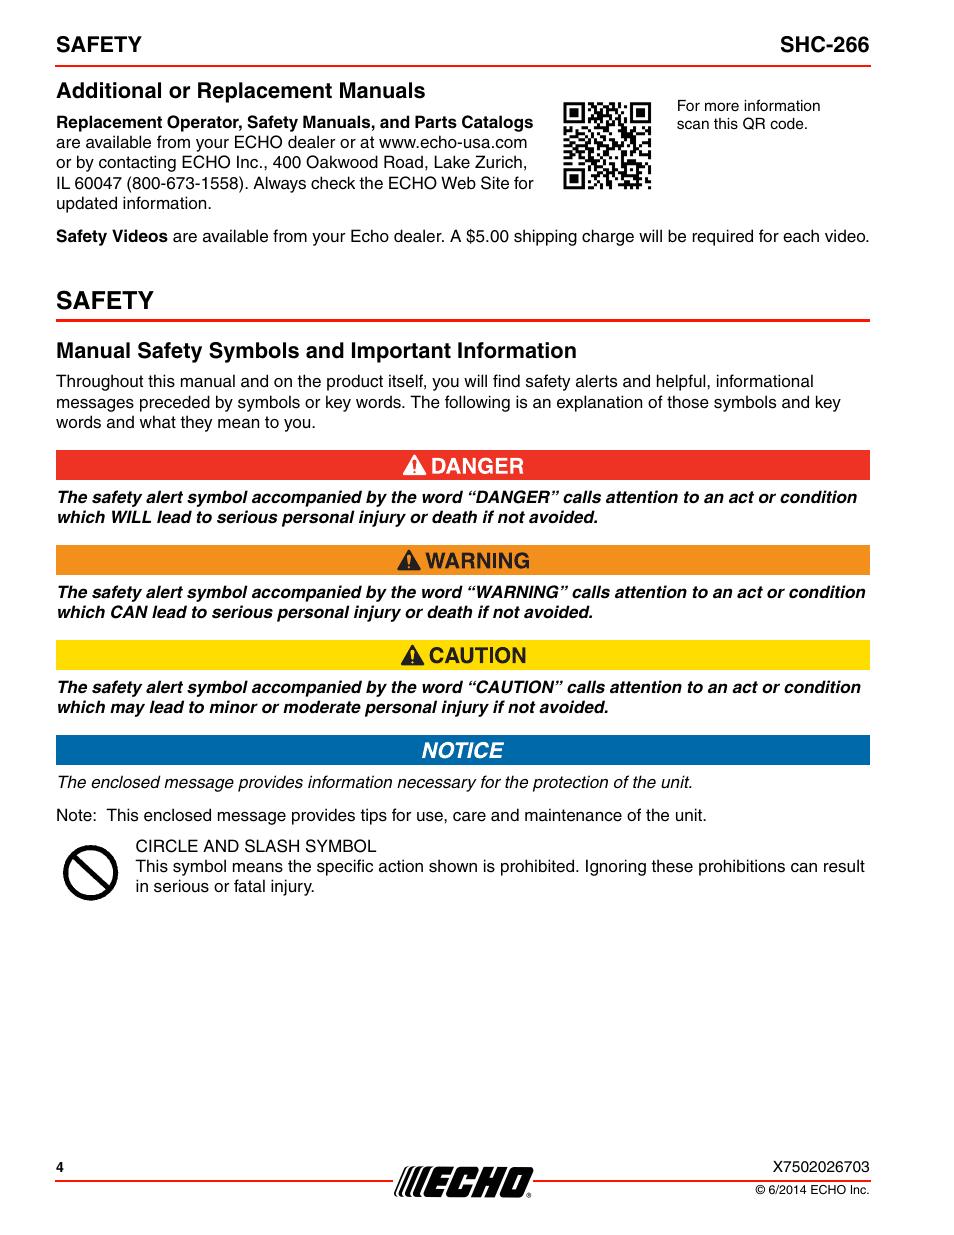 Additional Or Replacement Manuals Safety Manual Safety Symbols And